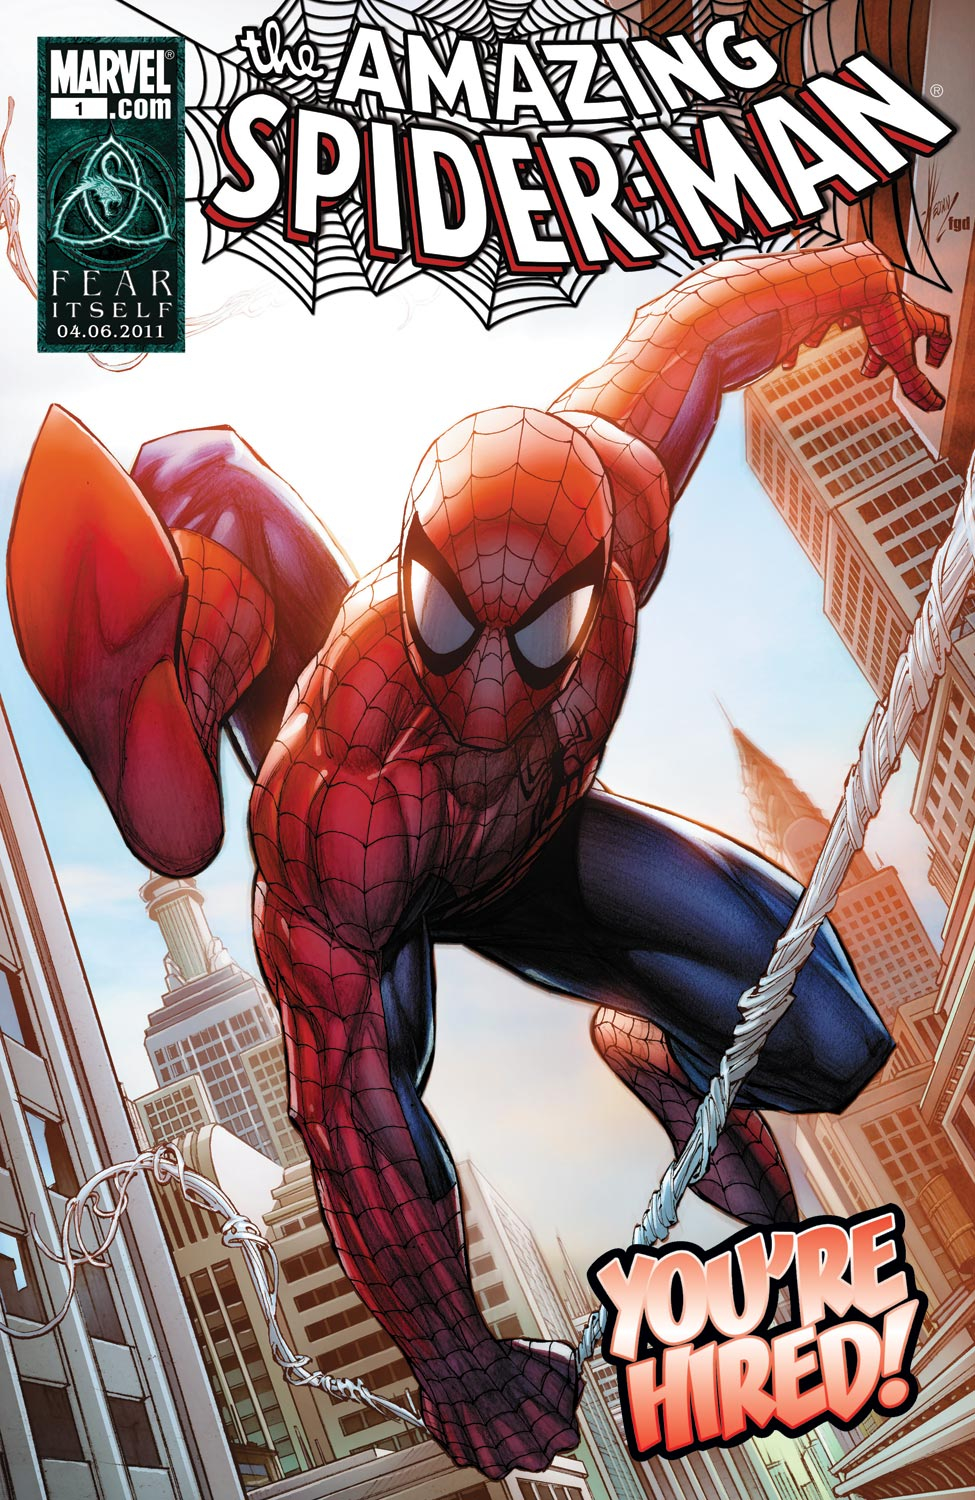 Spider-Man: You're Hired! (2011) #1